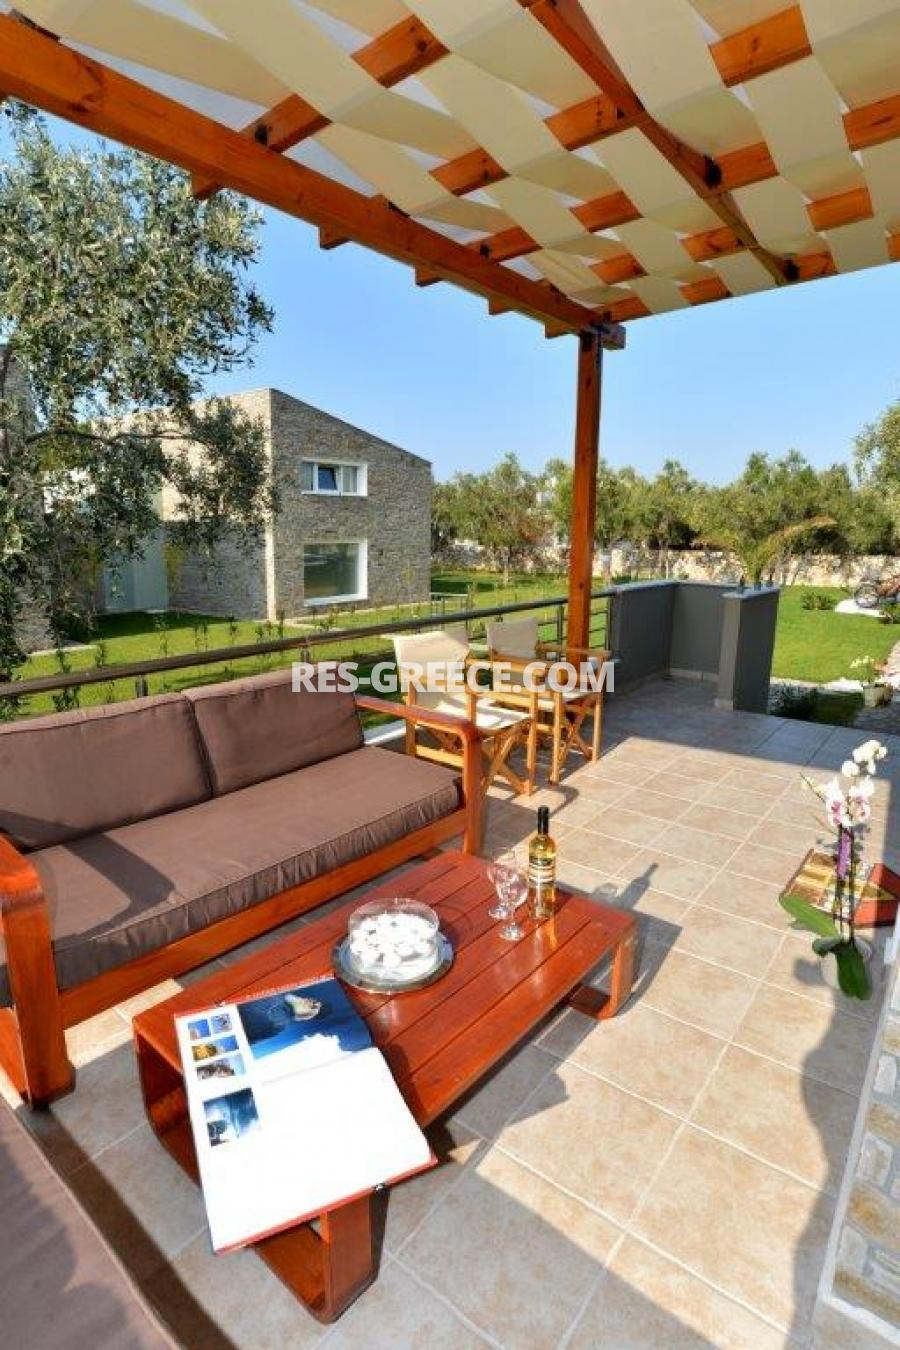 Arhondula Villa 3, Northern Aegean Islands, Greece - ready beachfront complex for rent on Thassos island with EOT licences - Photo 19